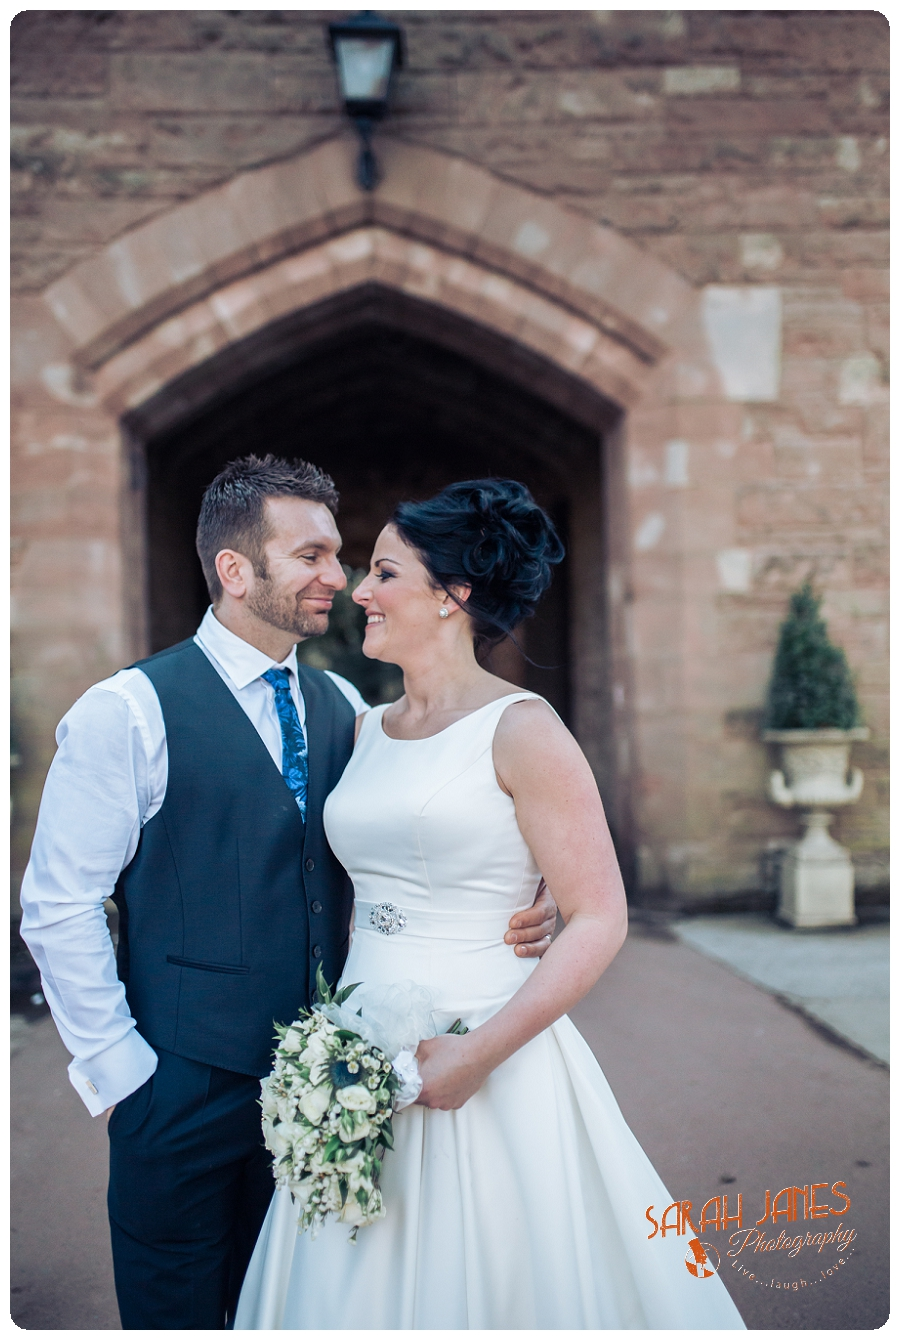 Peckforton Wedding photography, Weddings at Peckforton castle, Sarah Janes Photography, Peckforton Castle, Cheshire wedding photography_0047.jpg